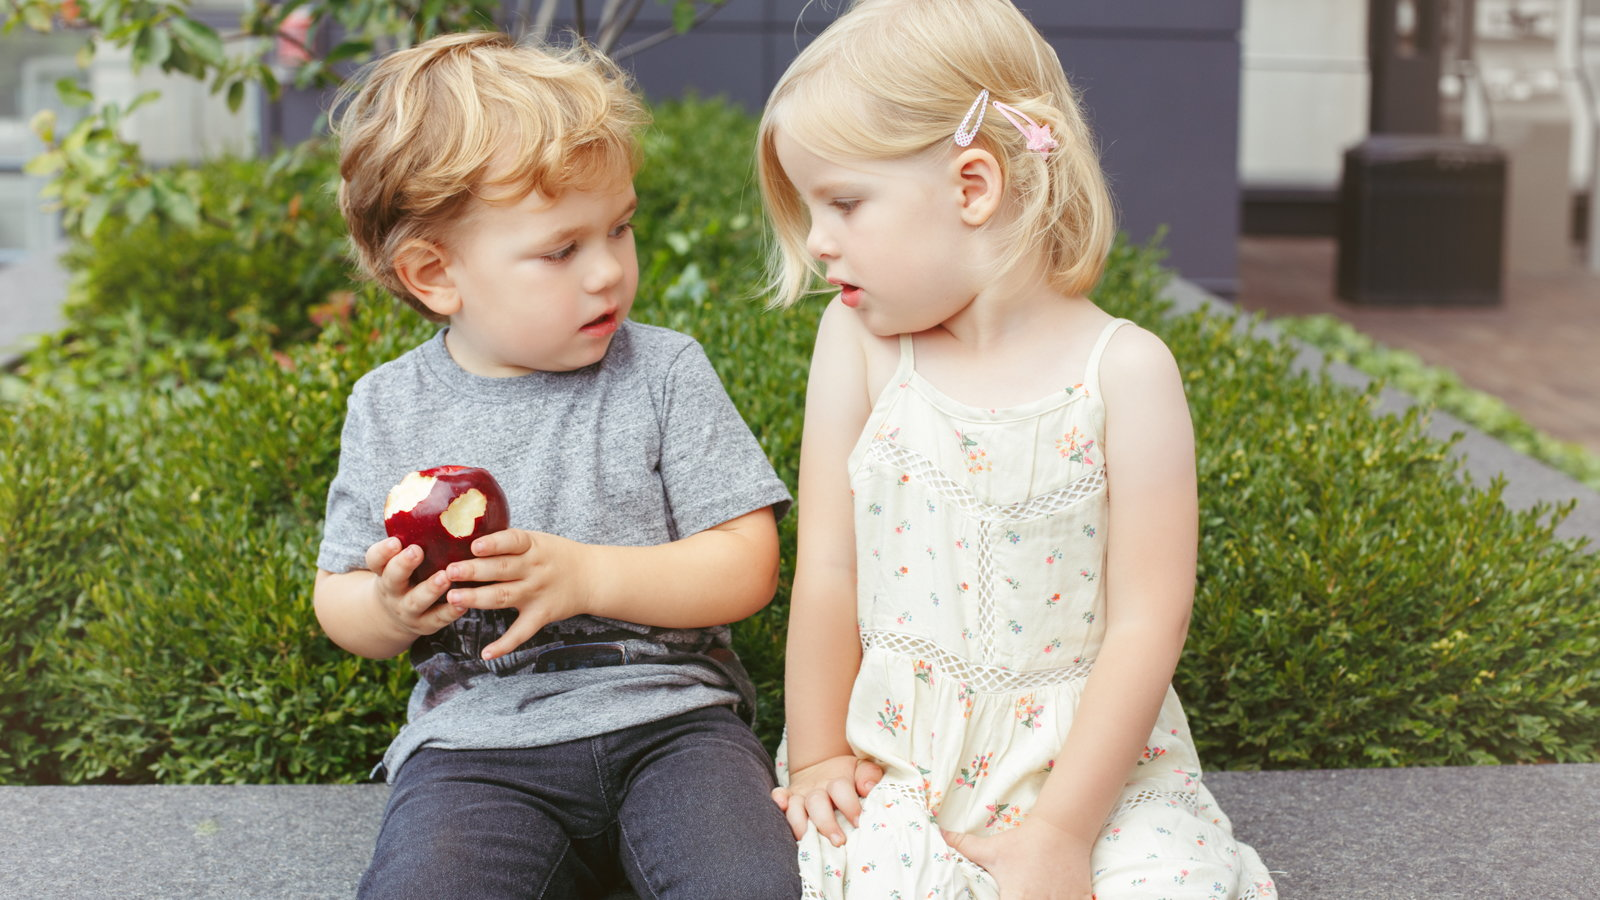 brother and sister sharing an apple